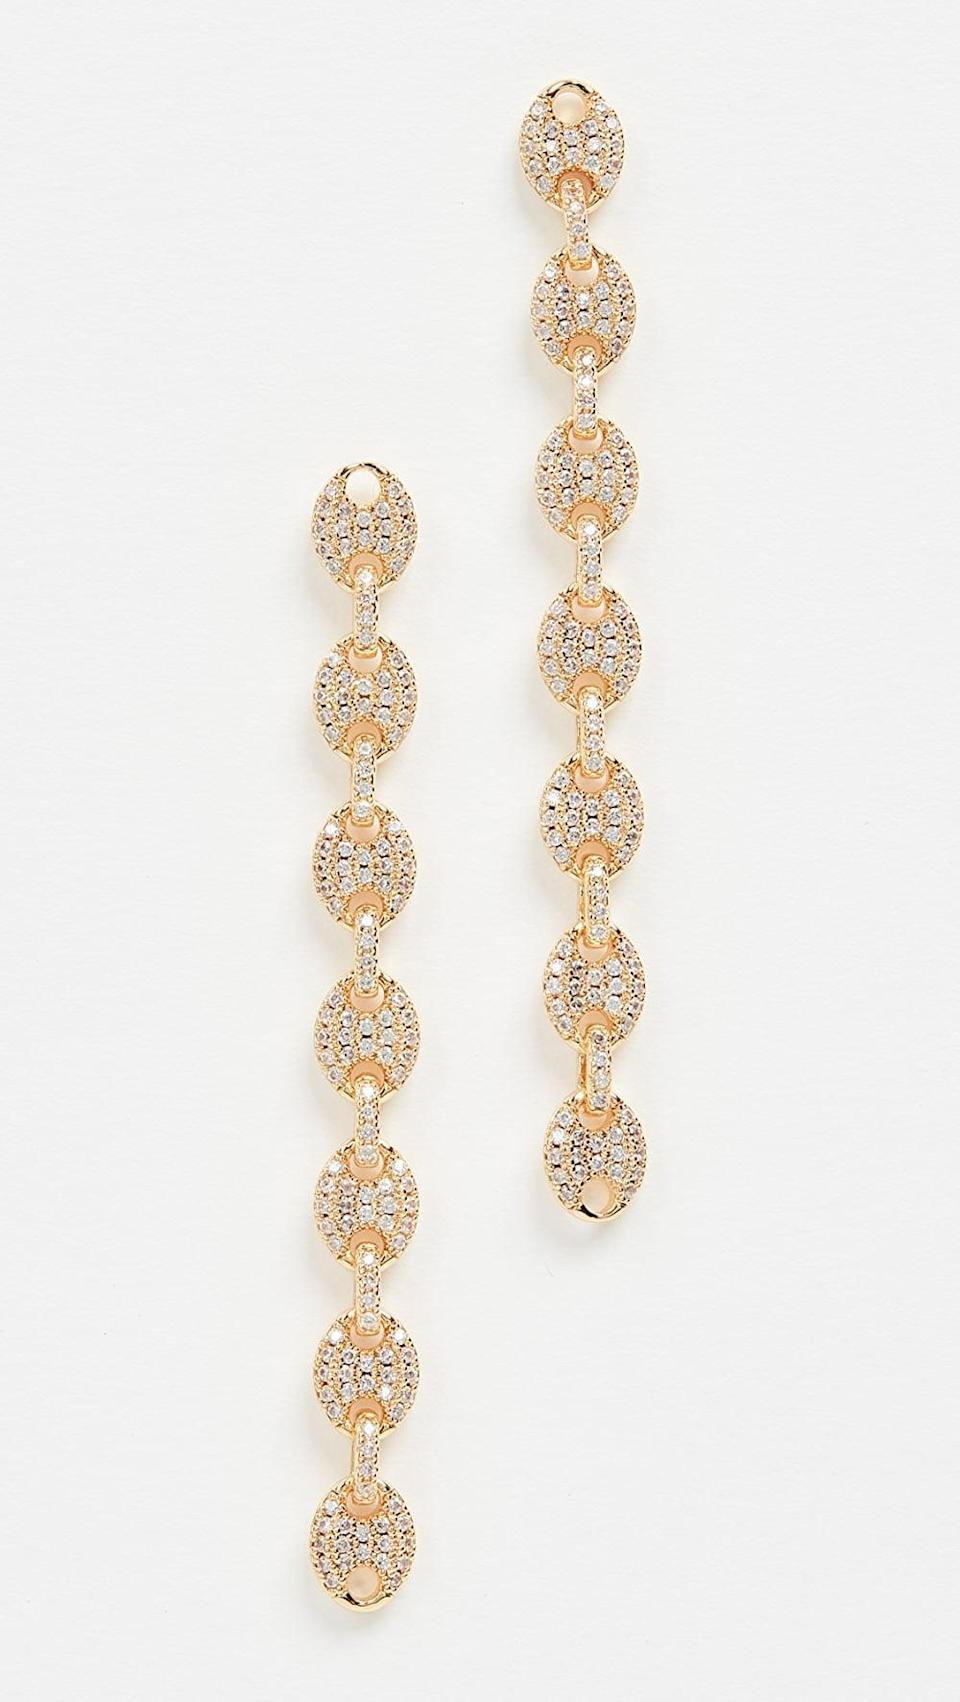 <p>These <span>Luv Aj Pave Mariner Link Earrings</span> ($75) are gorgeous and so statement-making.</p>